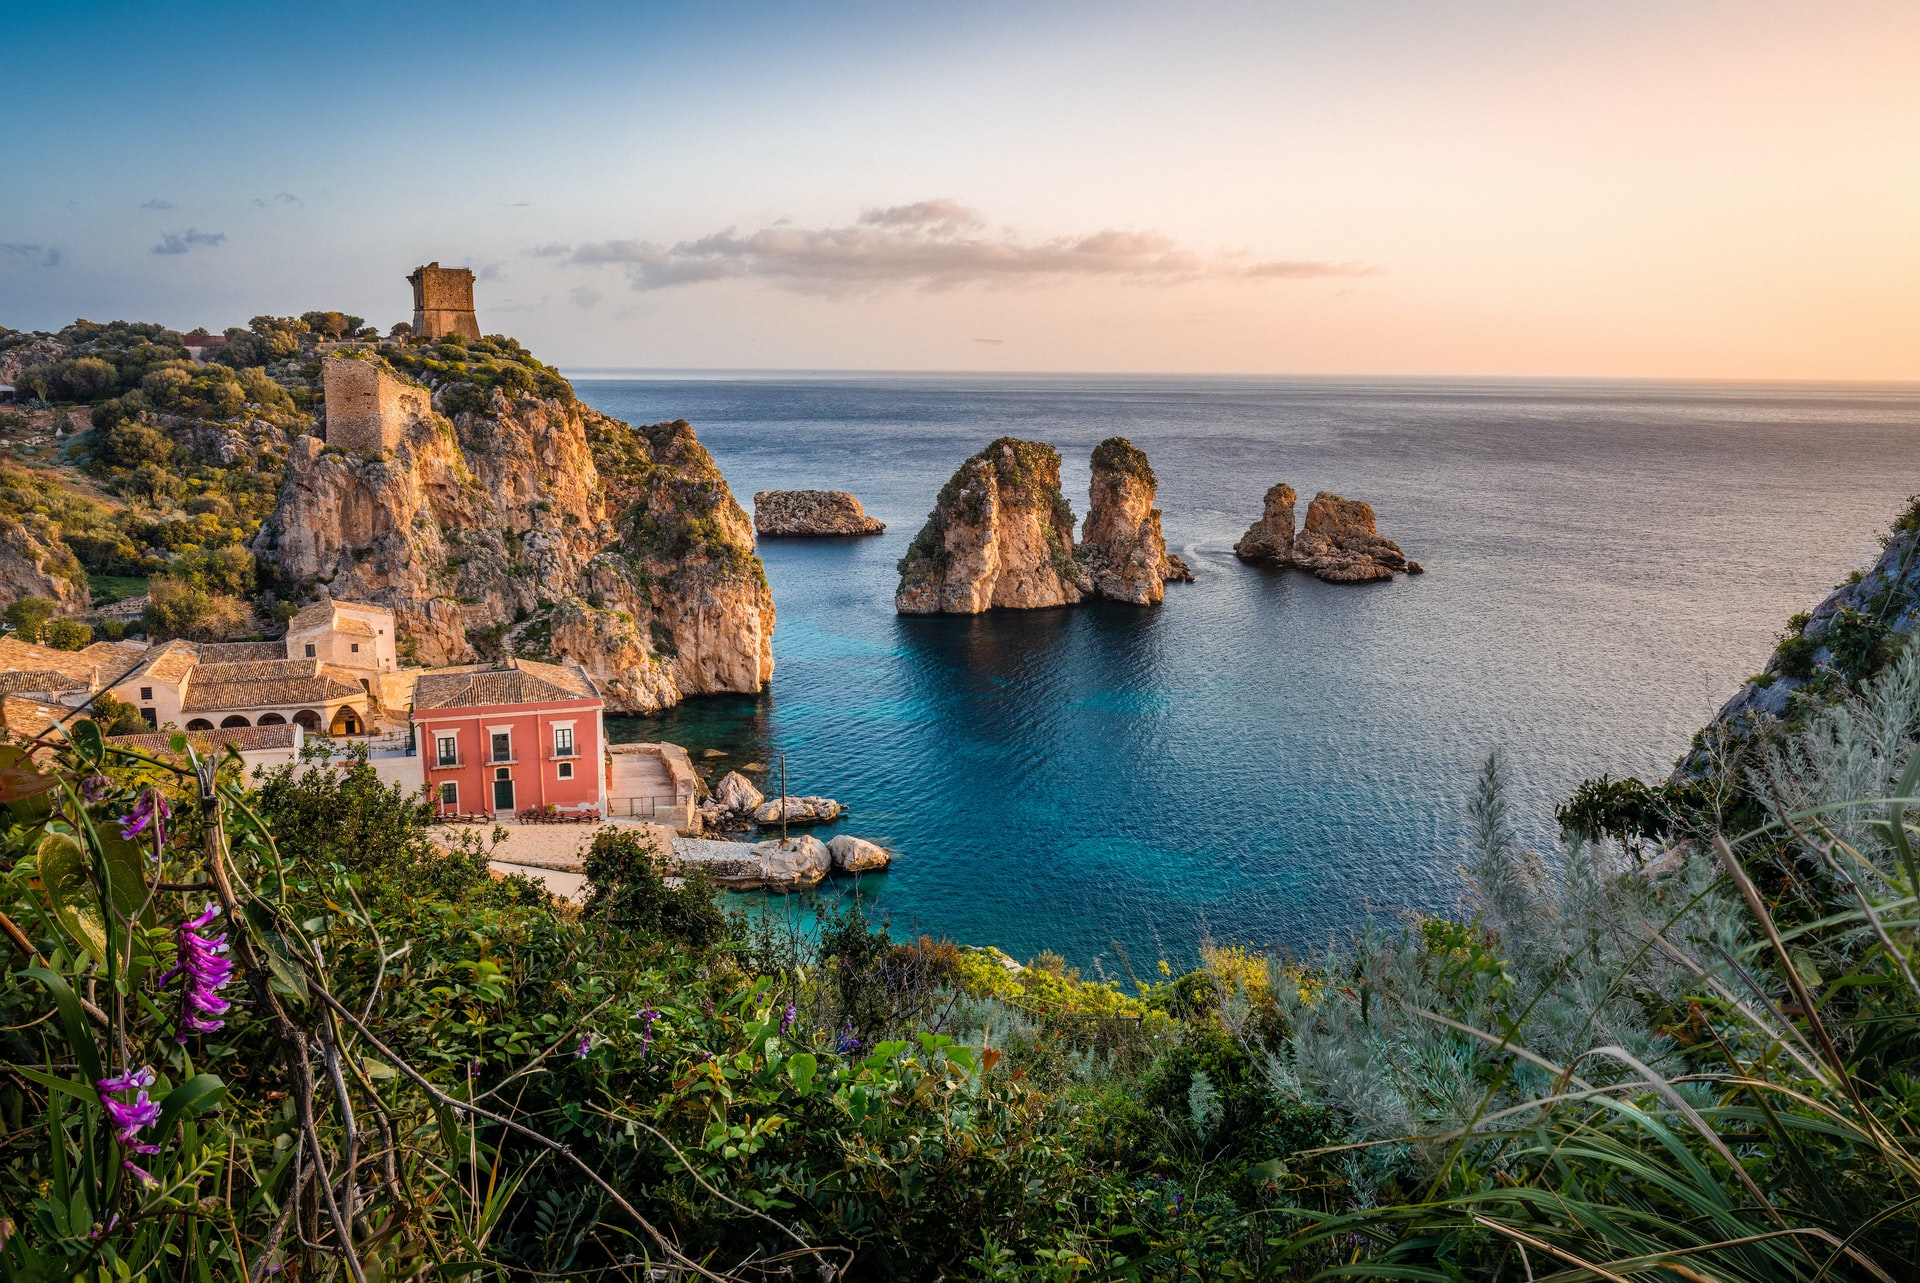 5 Best Places to Visit in Sicily After Lockdown